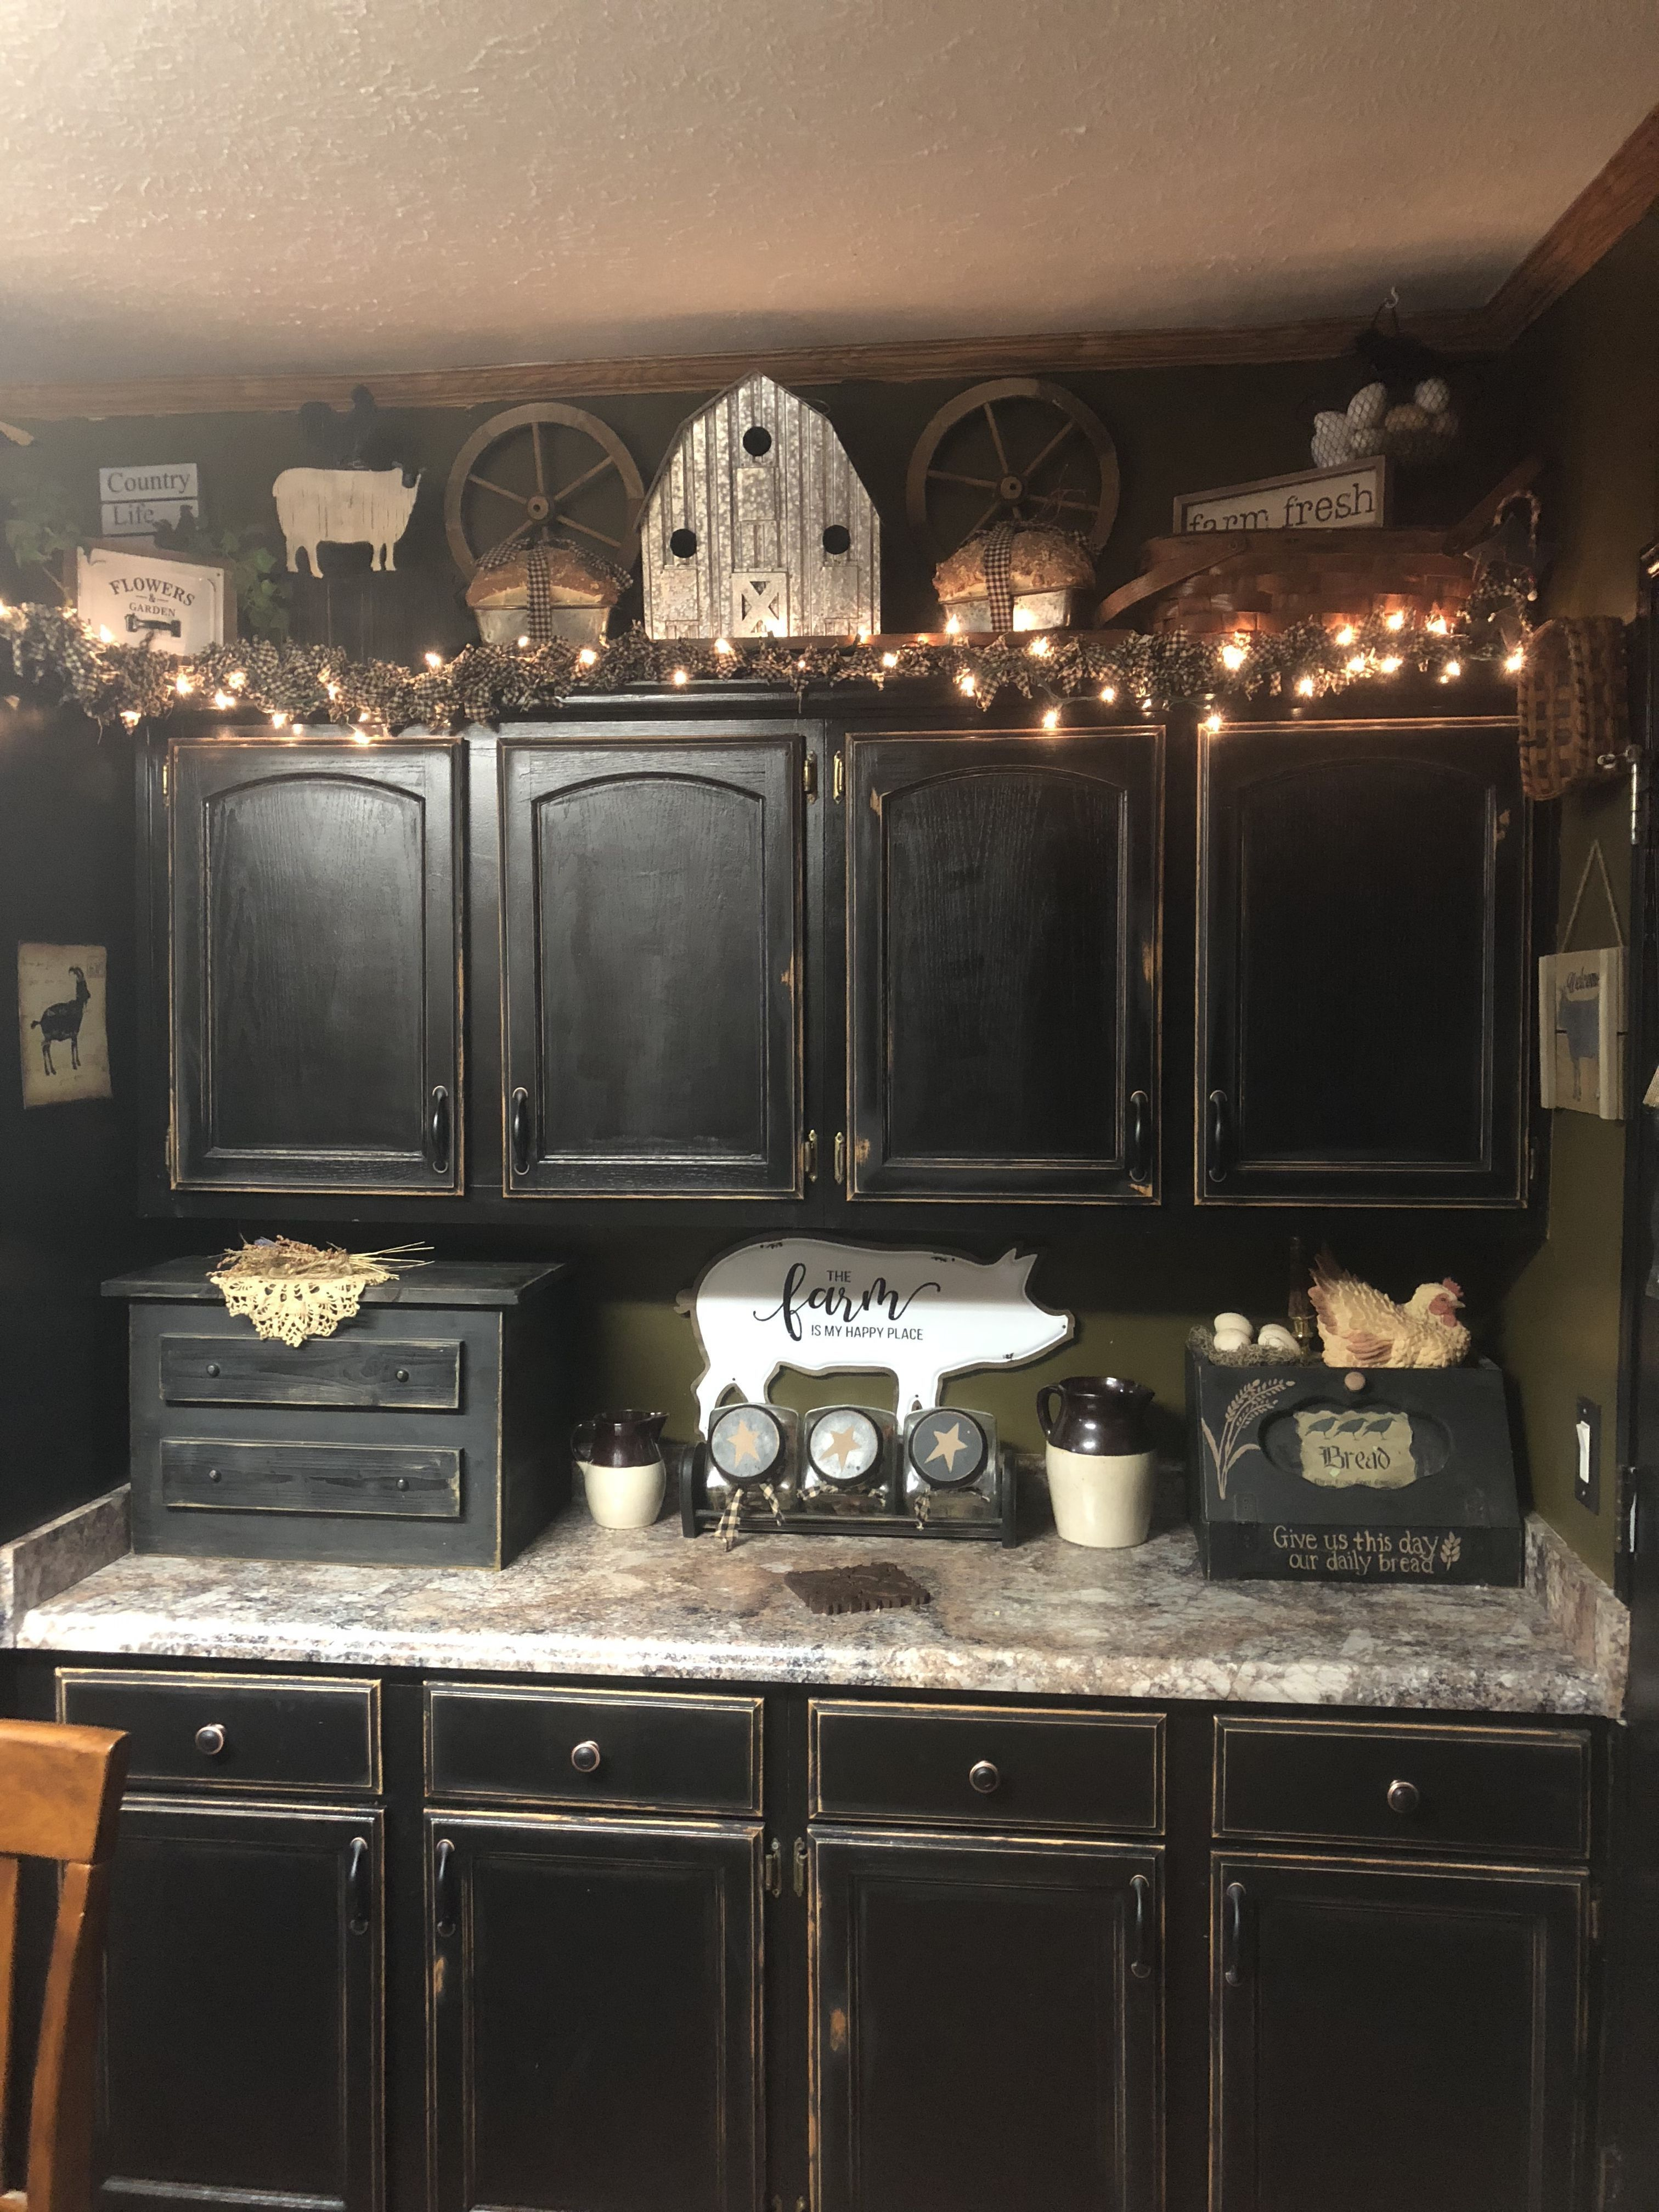 Today We Re Showing You Dazzling Black And White Interior Design Ideas To Get You In In 2021 Primitive Kitchen Cabinets Primitive Kitchen Decor Black Kitchen Cabinets